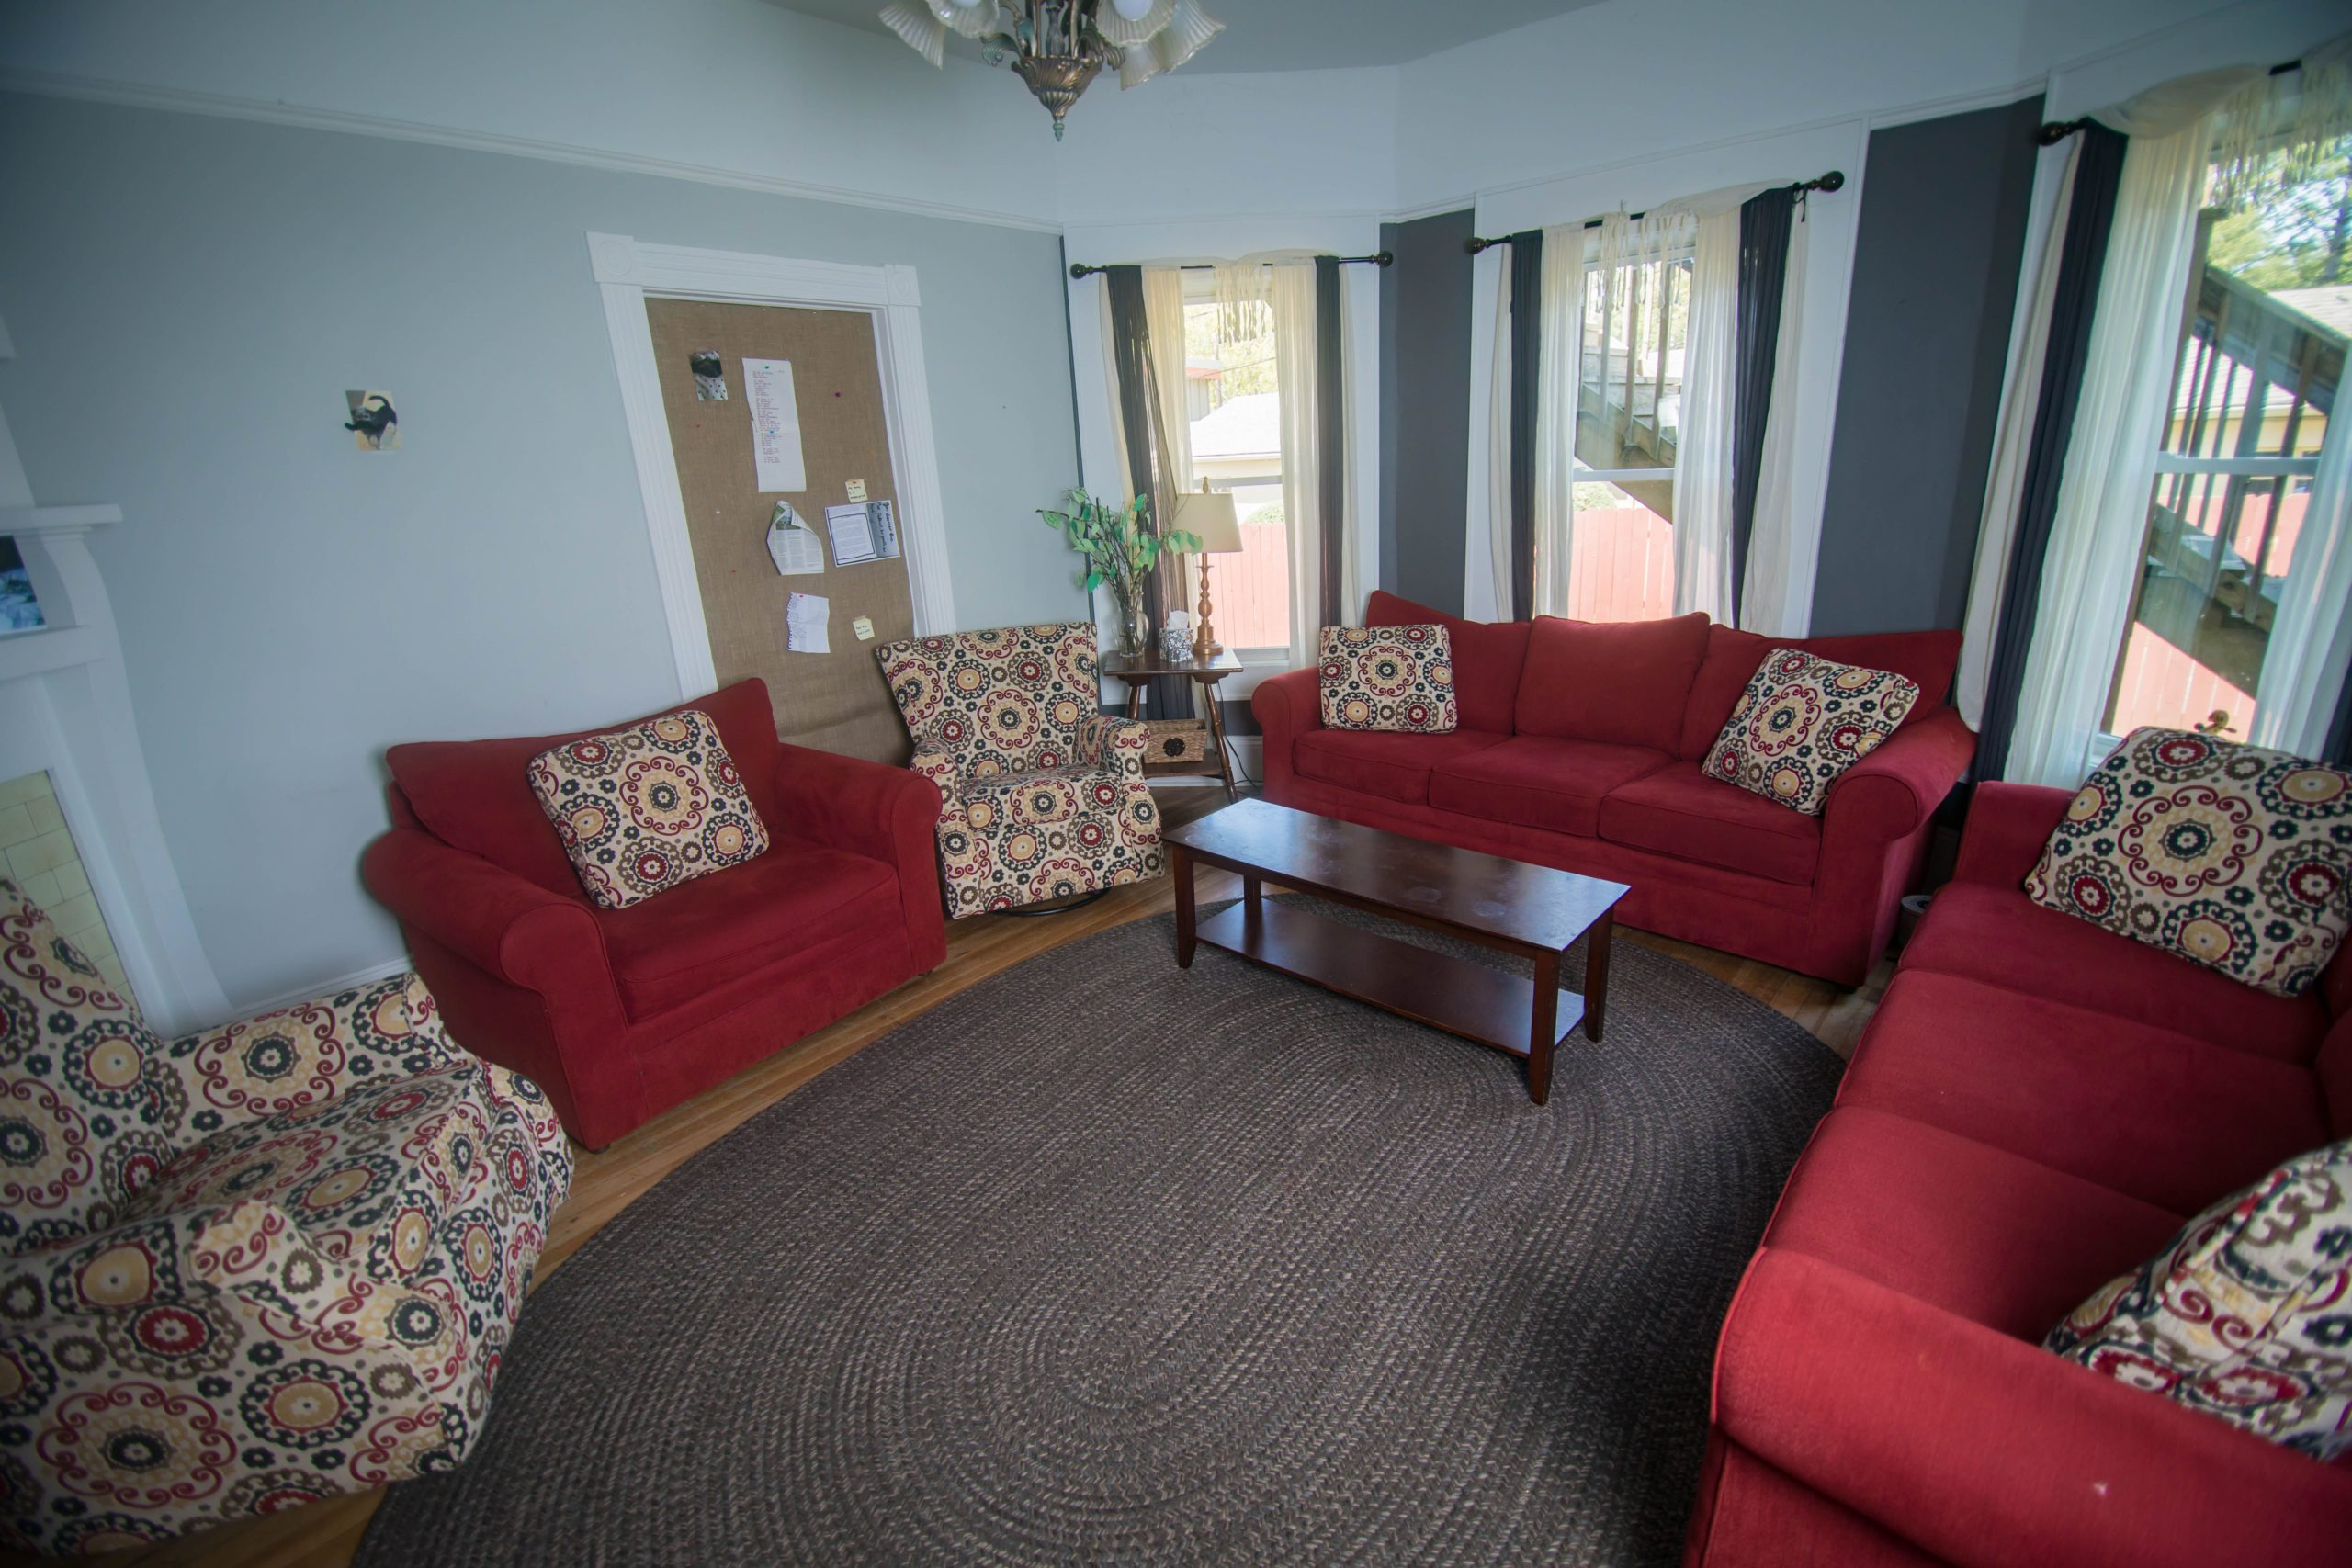 Group therapy room at Tapestry-Brevard